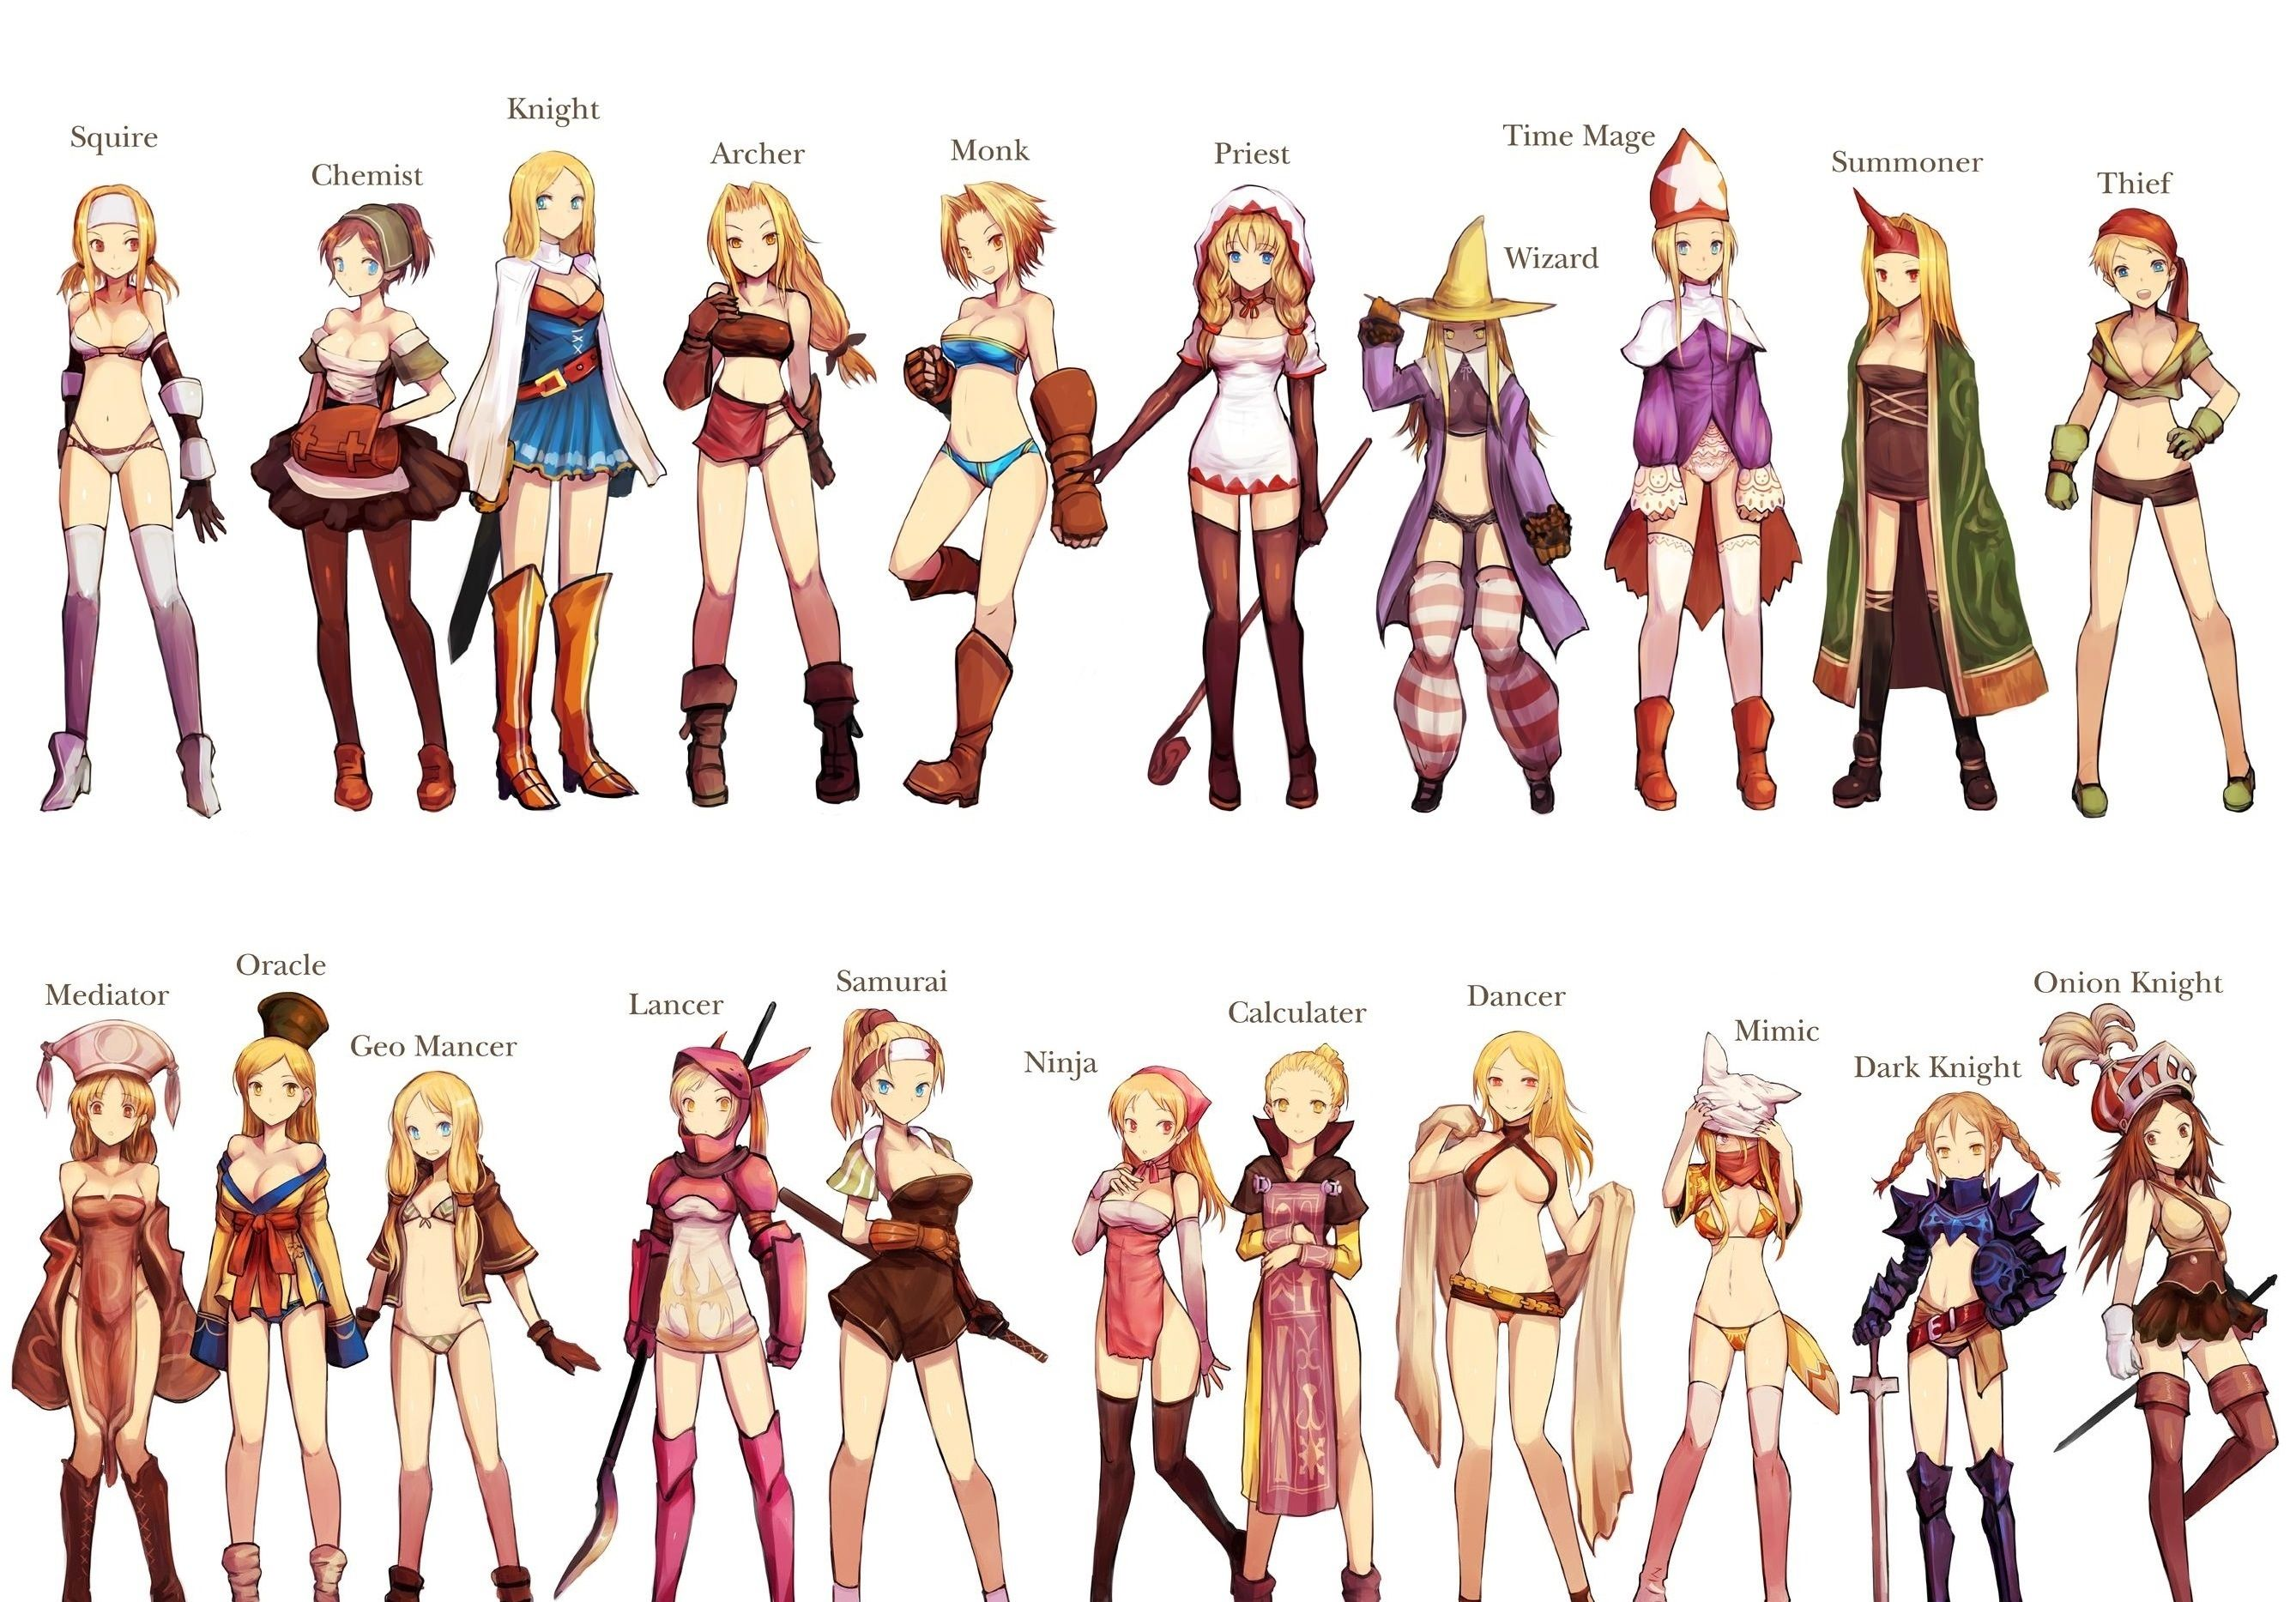 Anime Character Design Jobs : Final fantasy tactics jobs player character designs